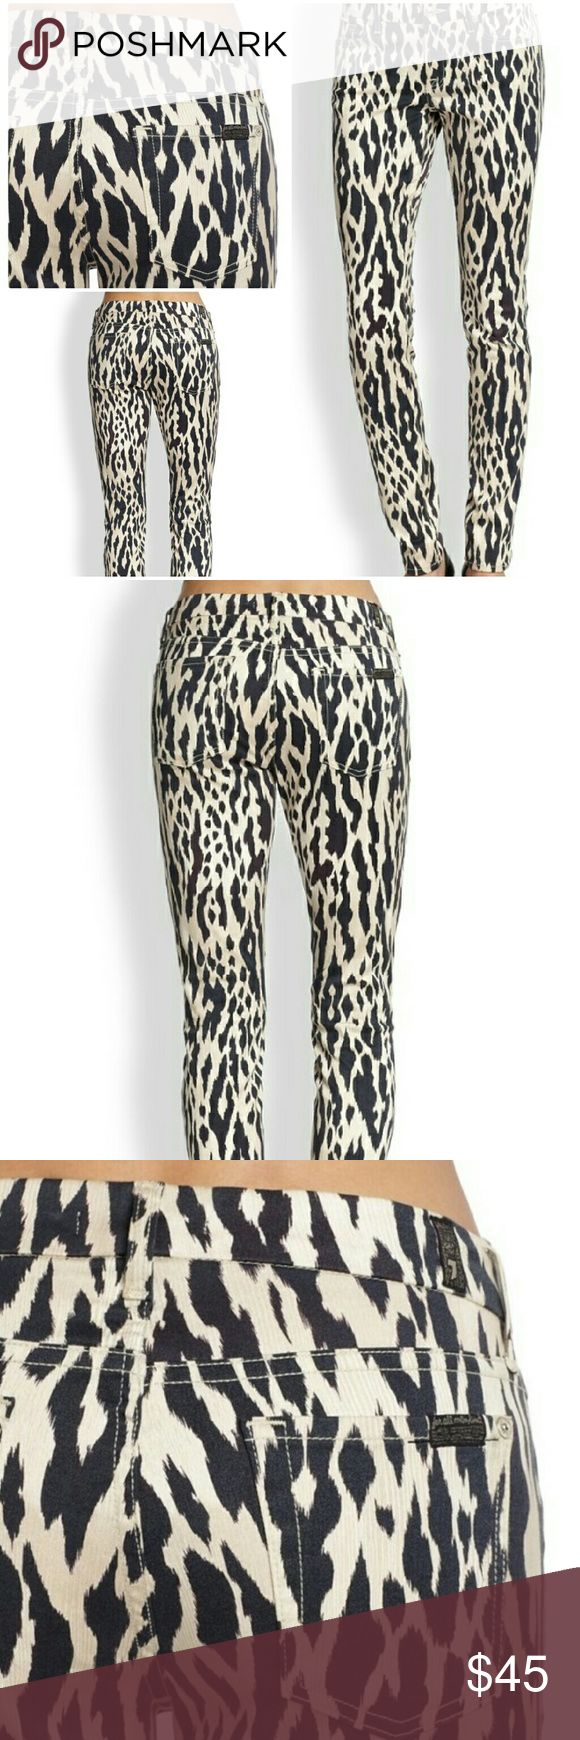 """💕 7 For All Mankind animal print jeans Sz 26 Seven for all mankind animal print jeans size 26 Waist measures laying flat 15"""", rise 8.5""""( mid rise), inseam 27"""" 96% cotton 4% spandex  Gently used in great condition no flaws 7 For All Mankind Jeans Skinny"""